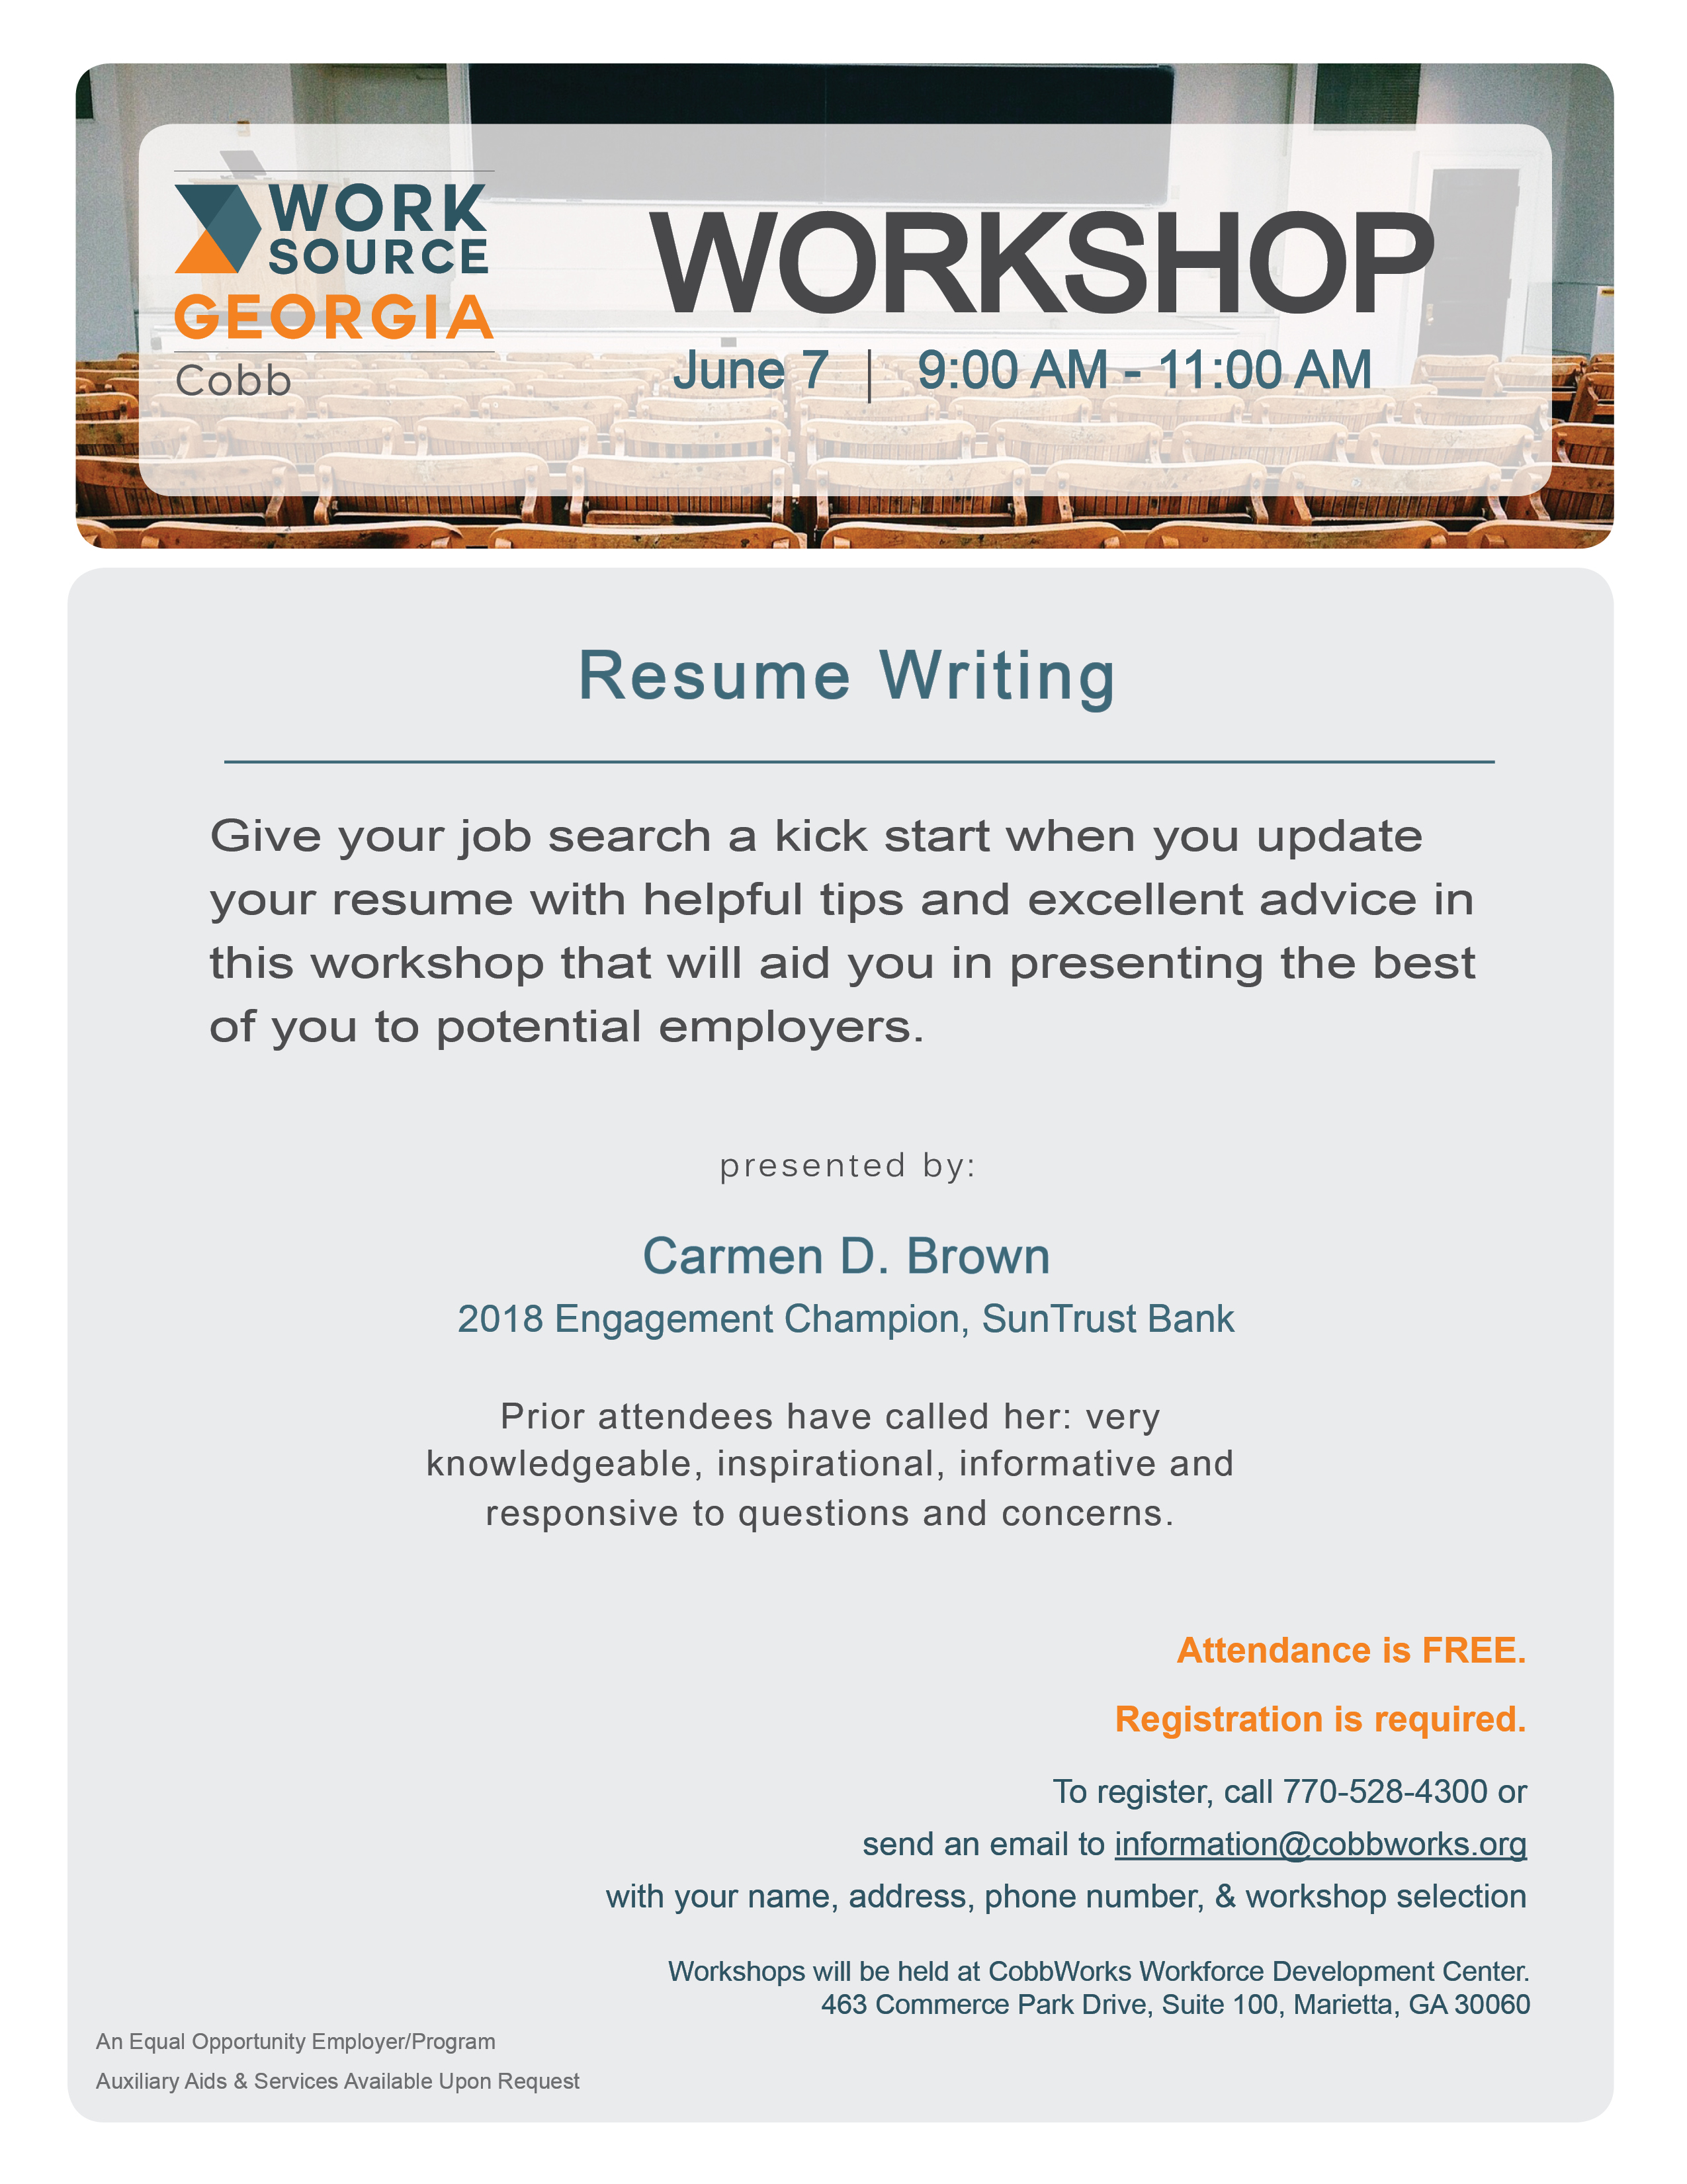 Resume Writing Workshop Worksource Cobb